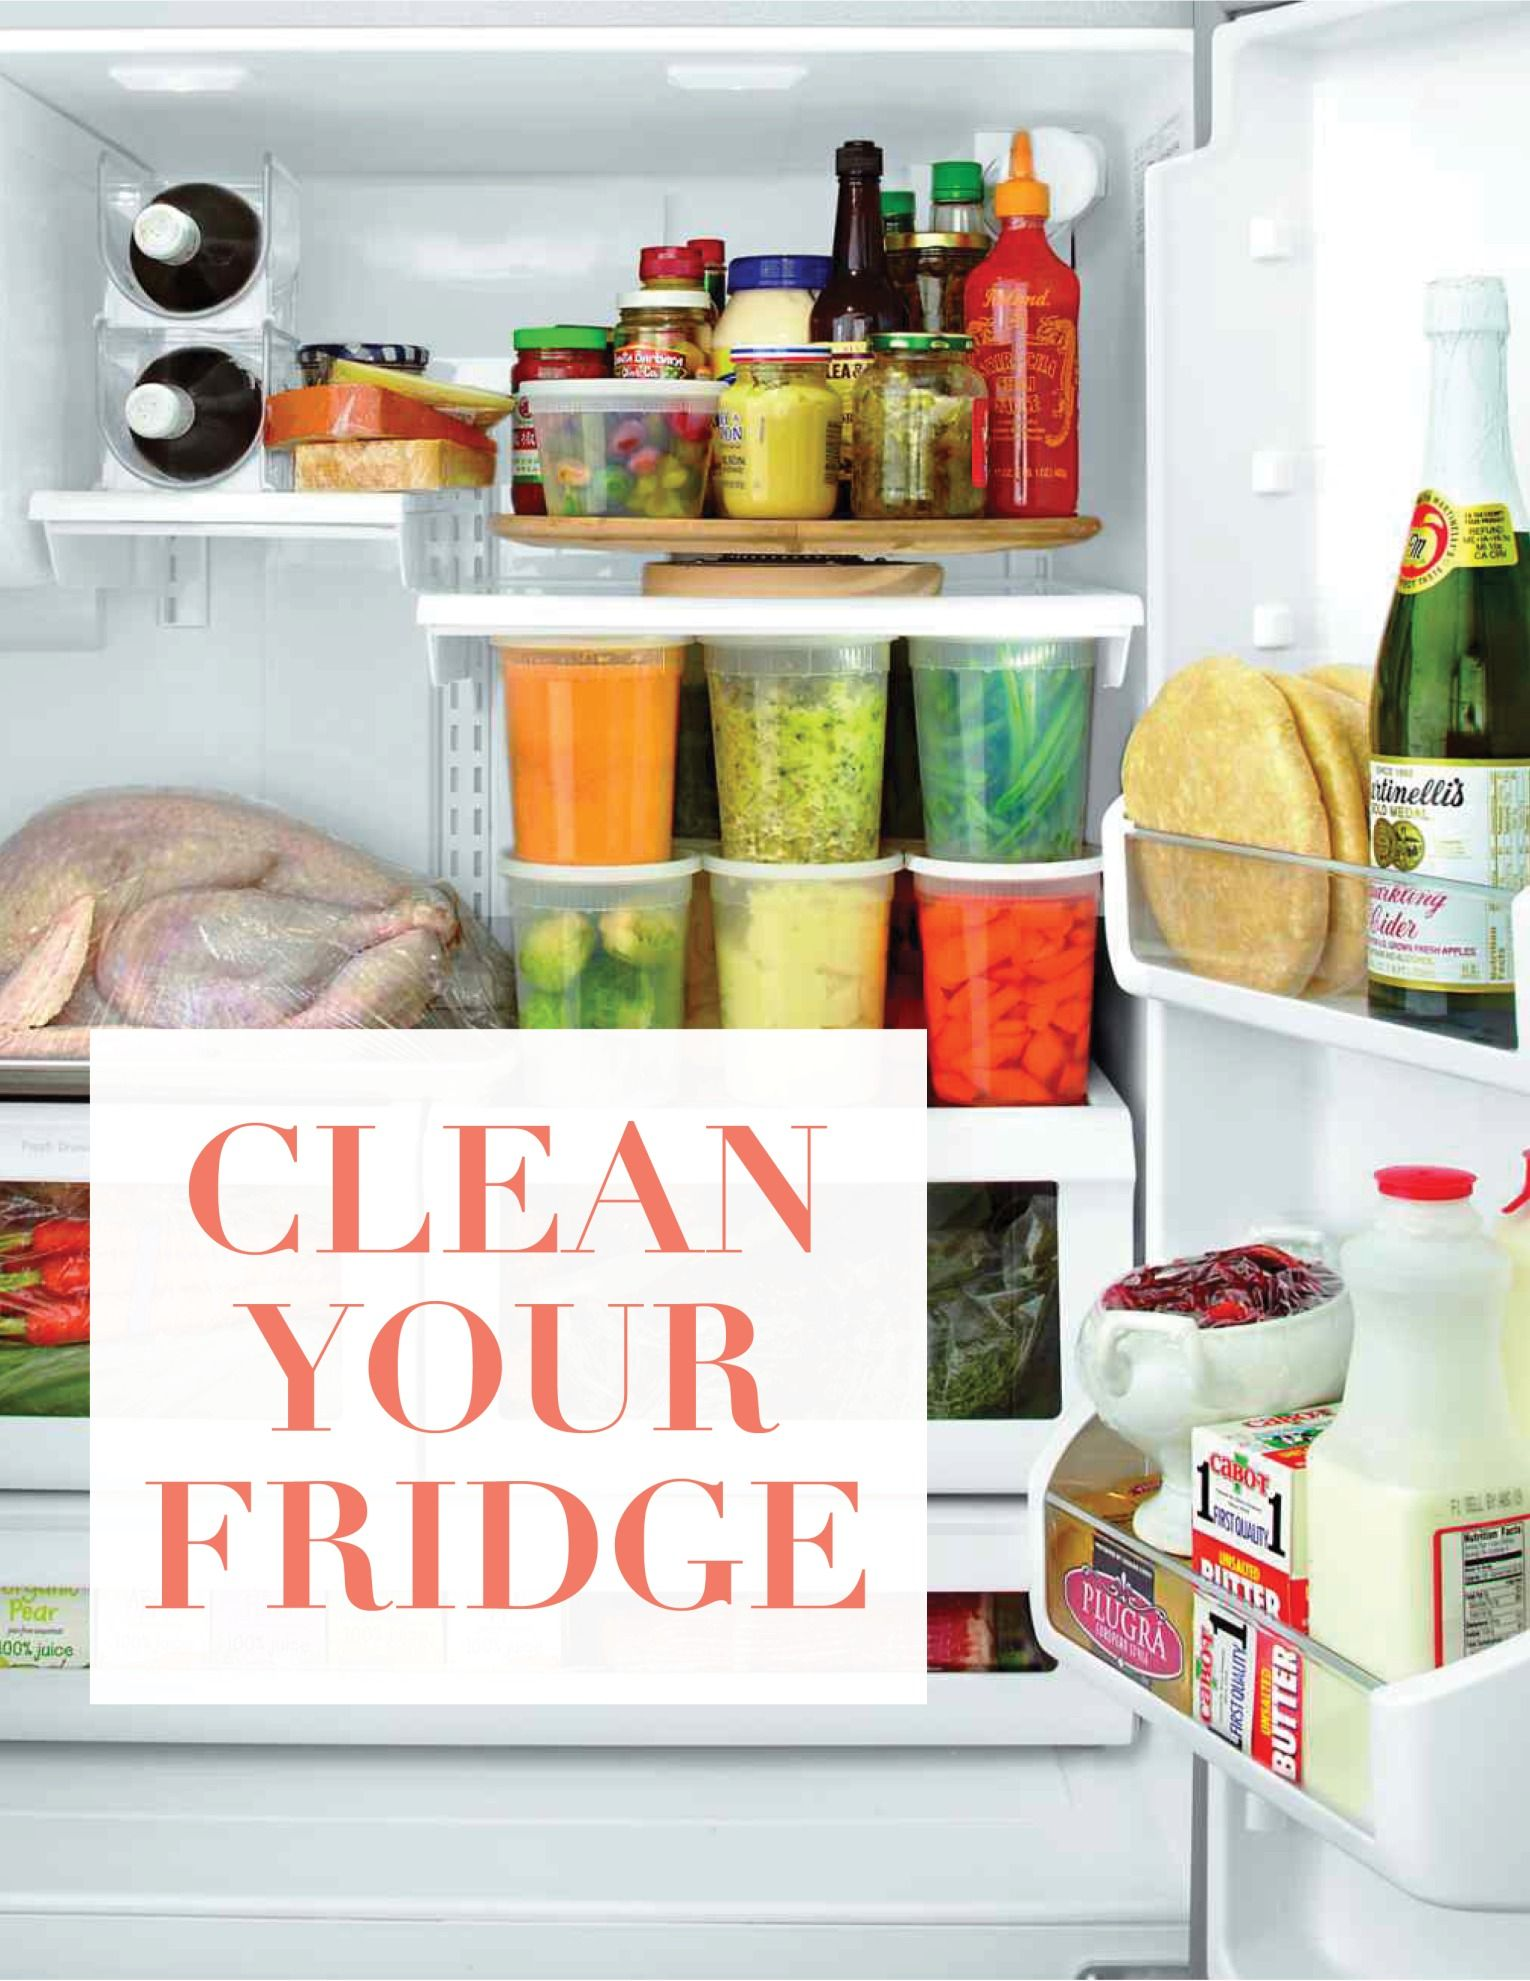 Clean Your Fridge | Martha Stewart Living - The refrigerator is one of the hardest working appliances in your home -- and one that often takes a beating. It's subject to spills, varied odors, and overcrowding, and it's the one appliance that never gets a rest. A clean refrigerator promises to keep food fresher, so do your best to maintain the cleanliness of this kitchen workhorse.